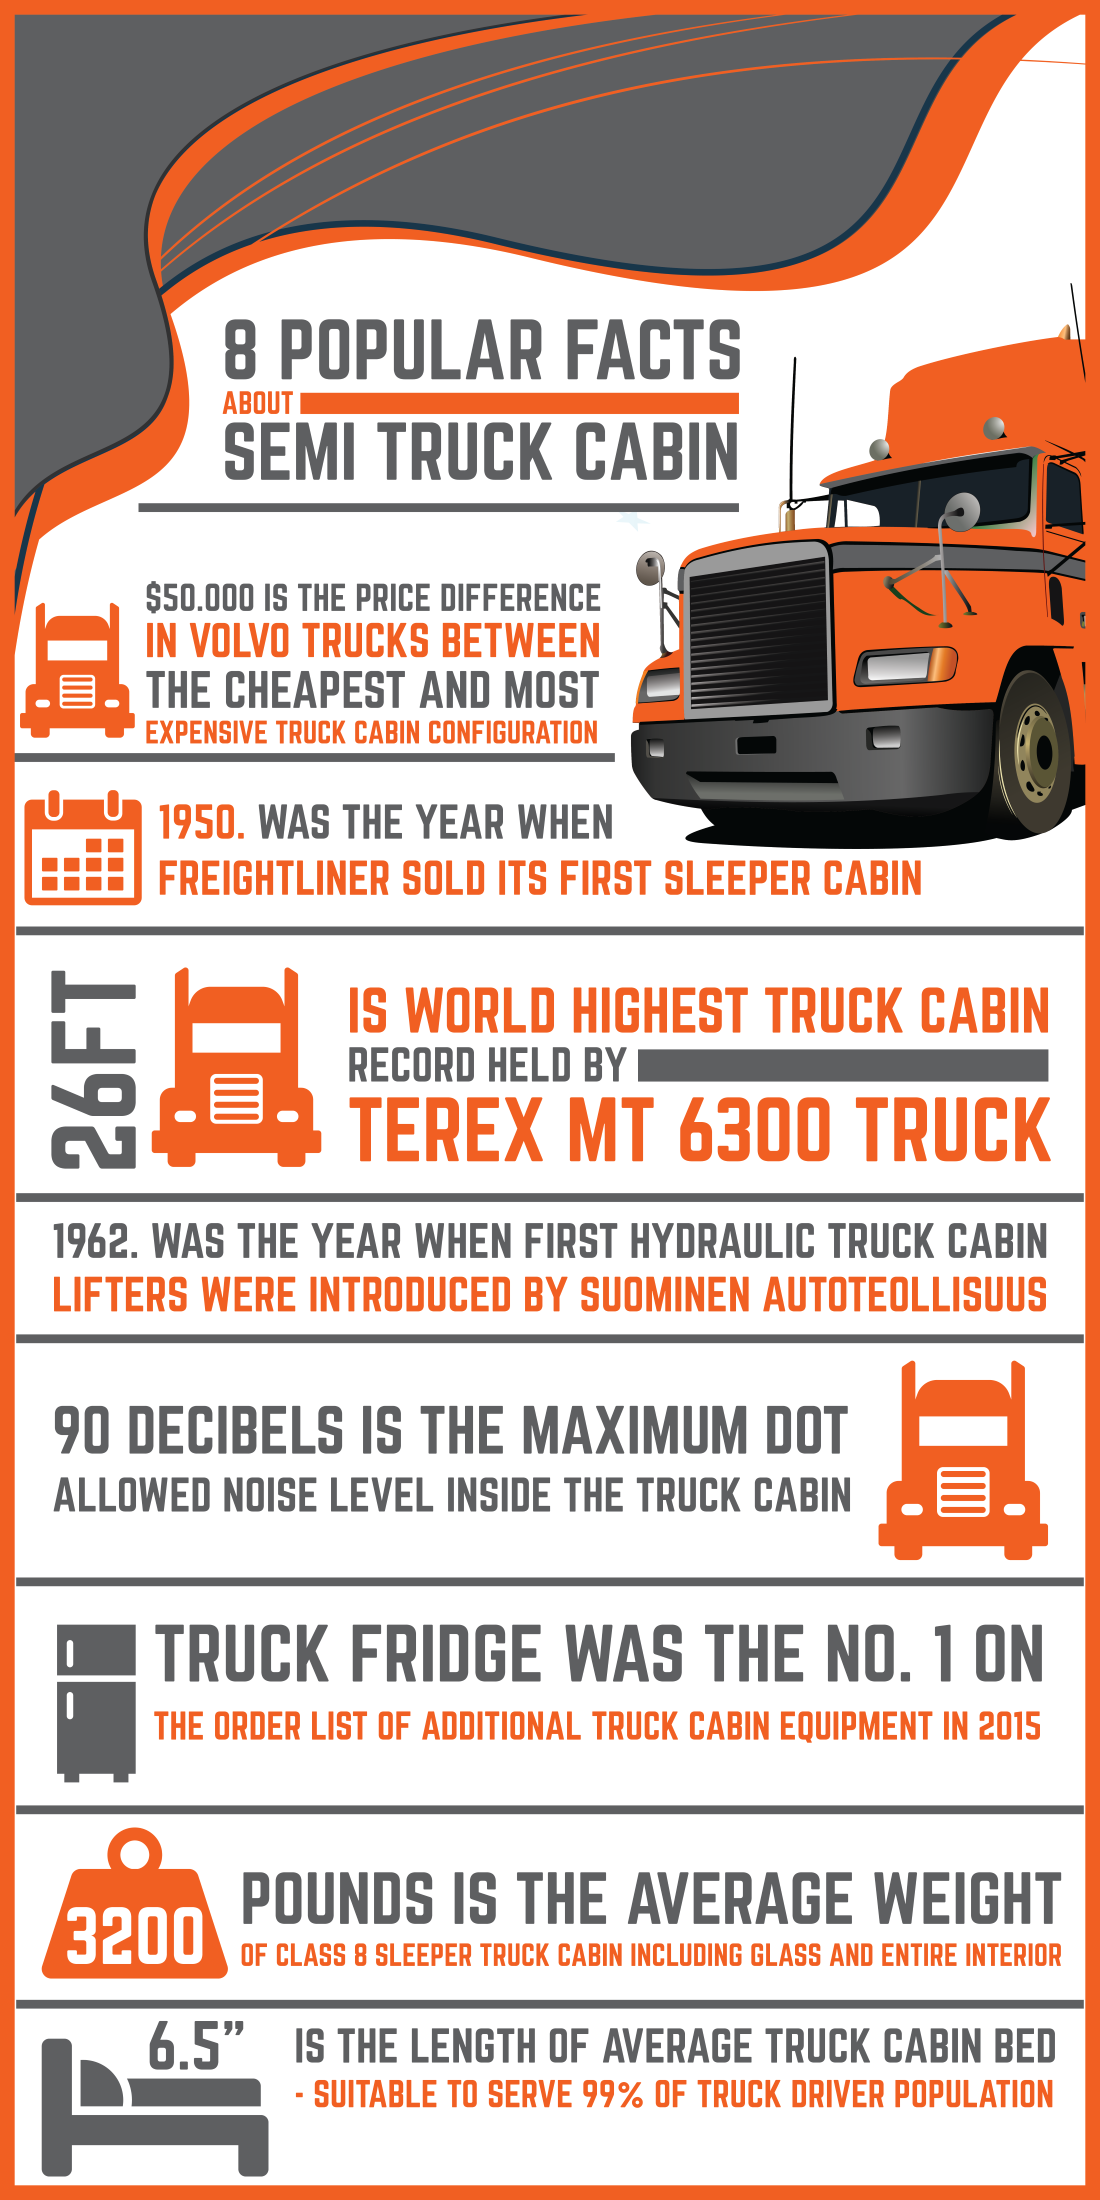 8 Popular Facts About Truck Cabin